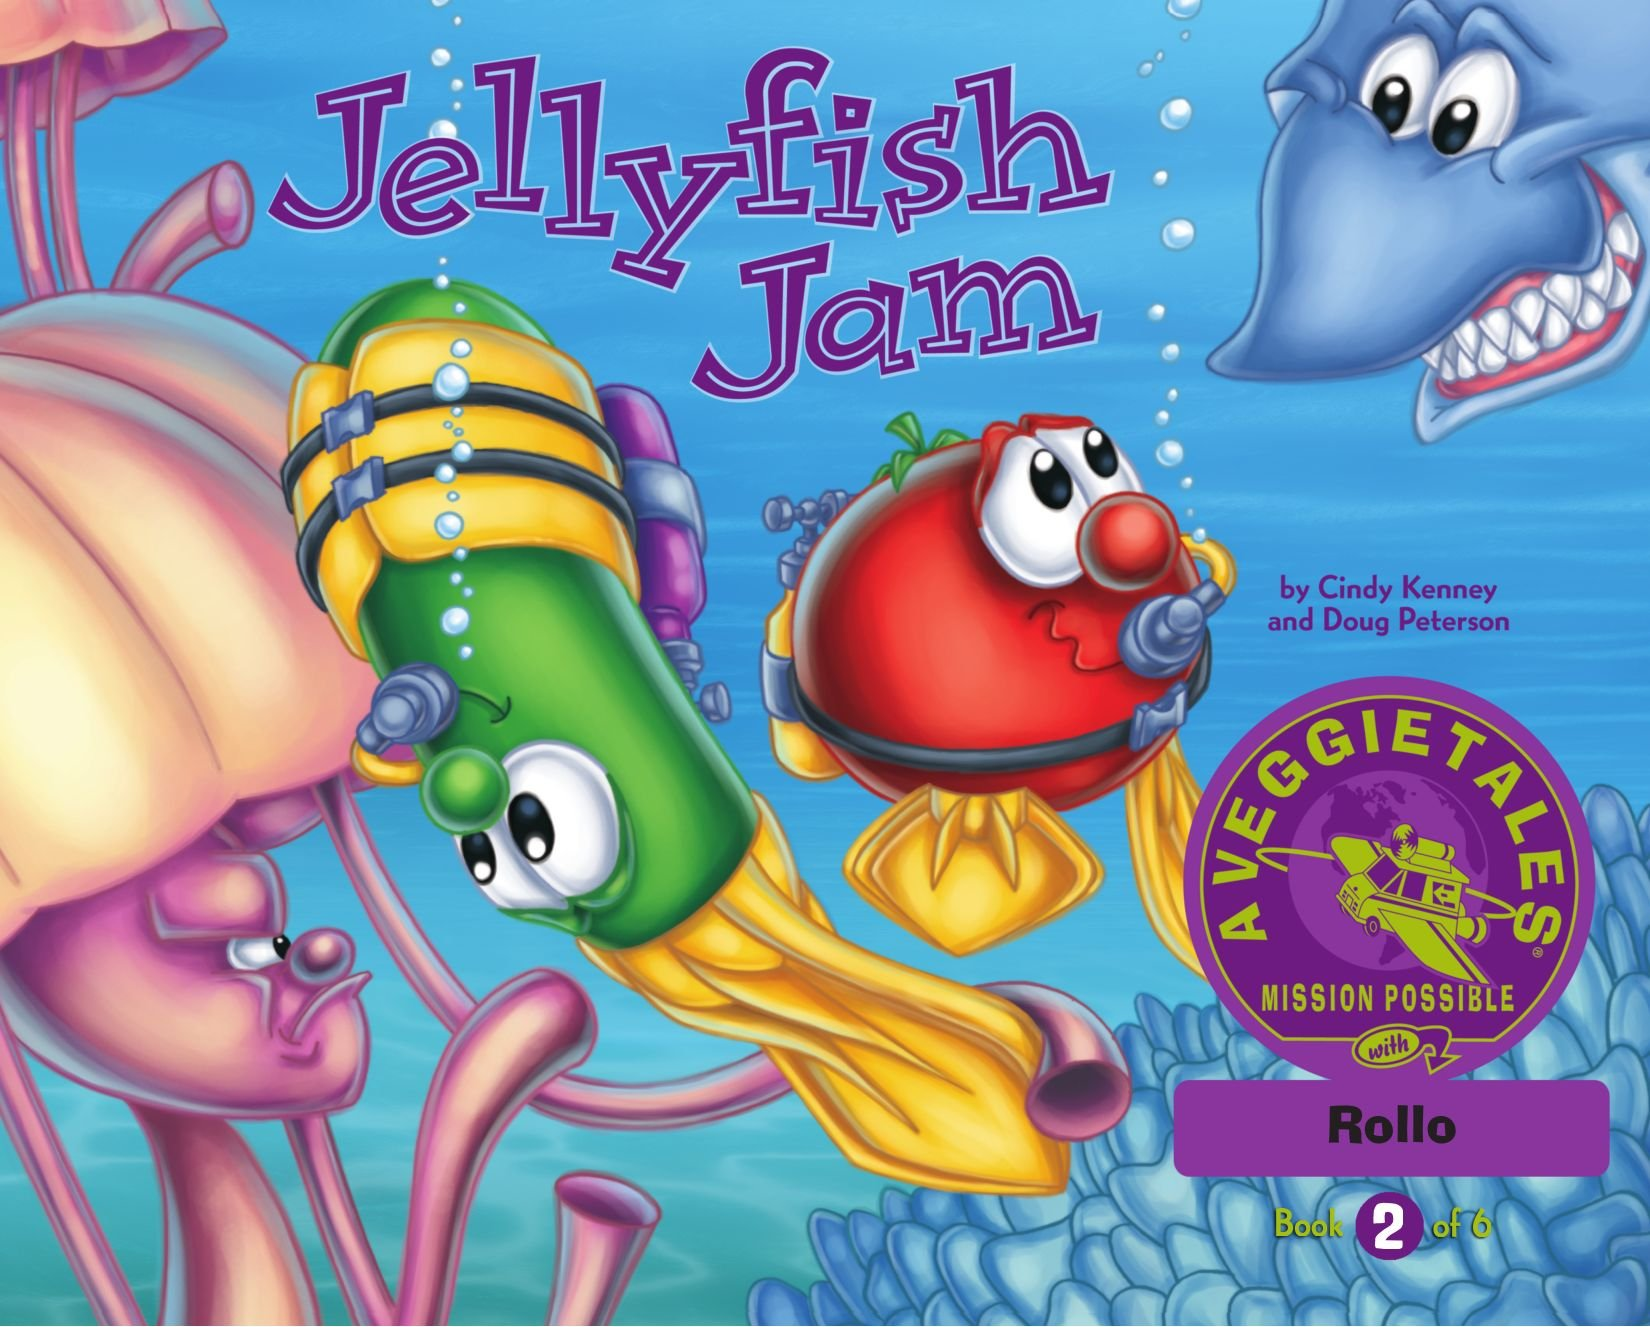 Download Jellyfish Jam - VeggieTales Mission Possible Adventure Series #2: Personalized for Rollo (Boy) ebook